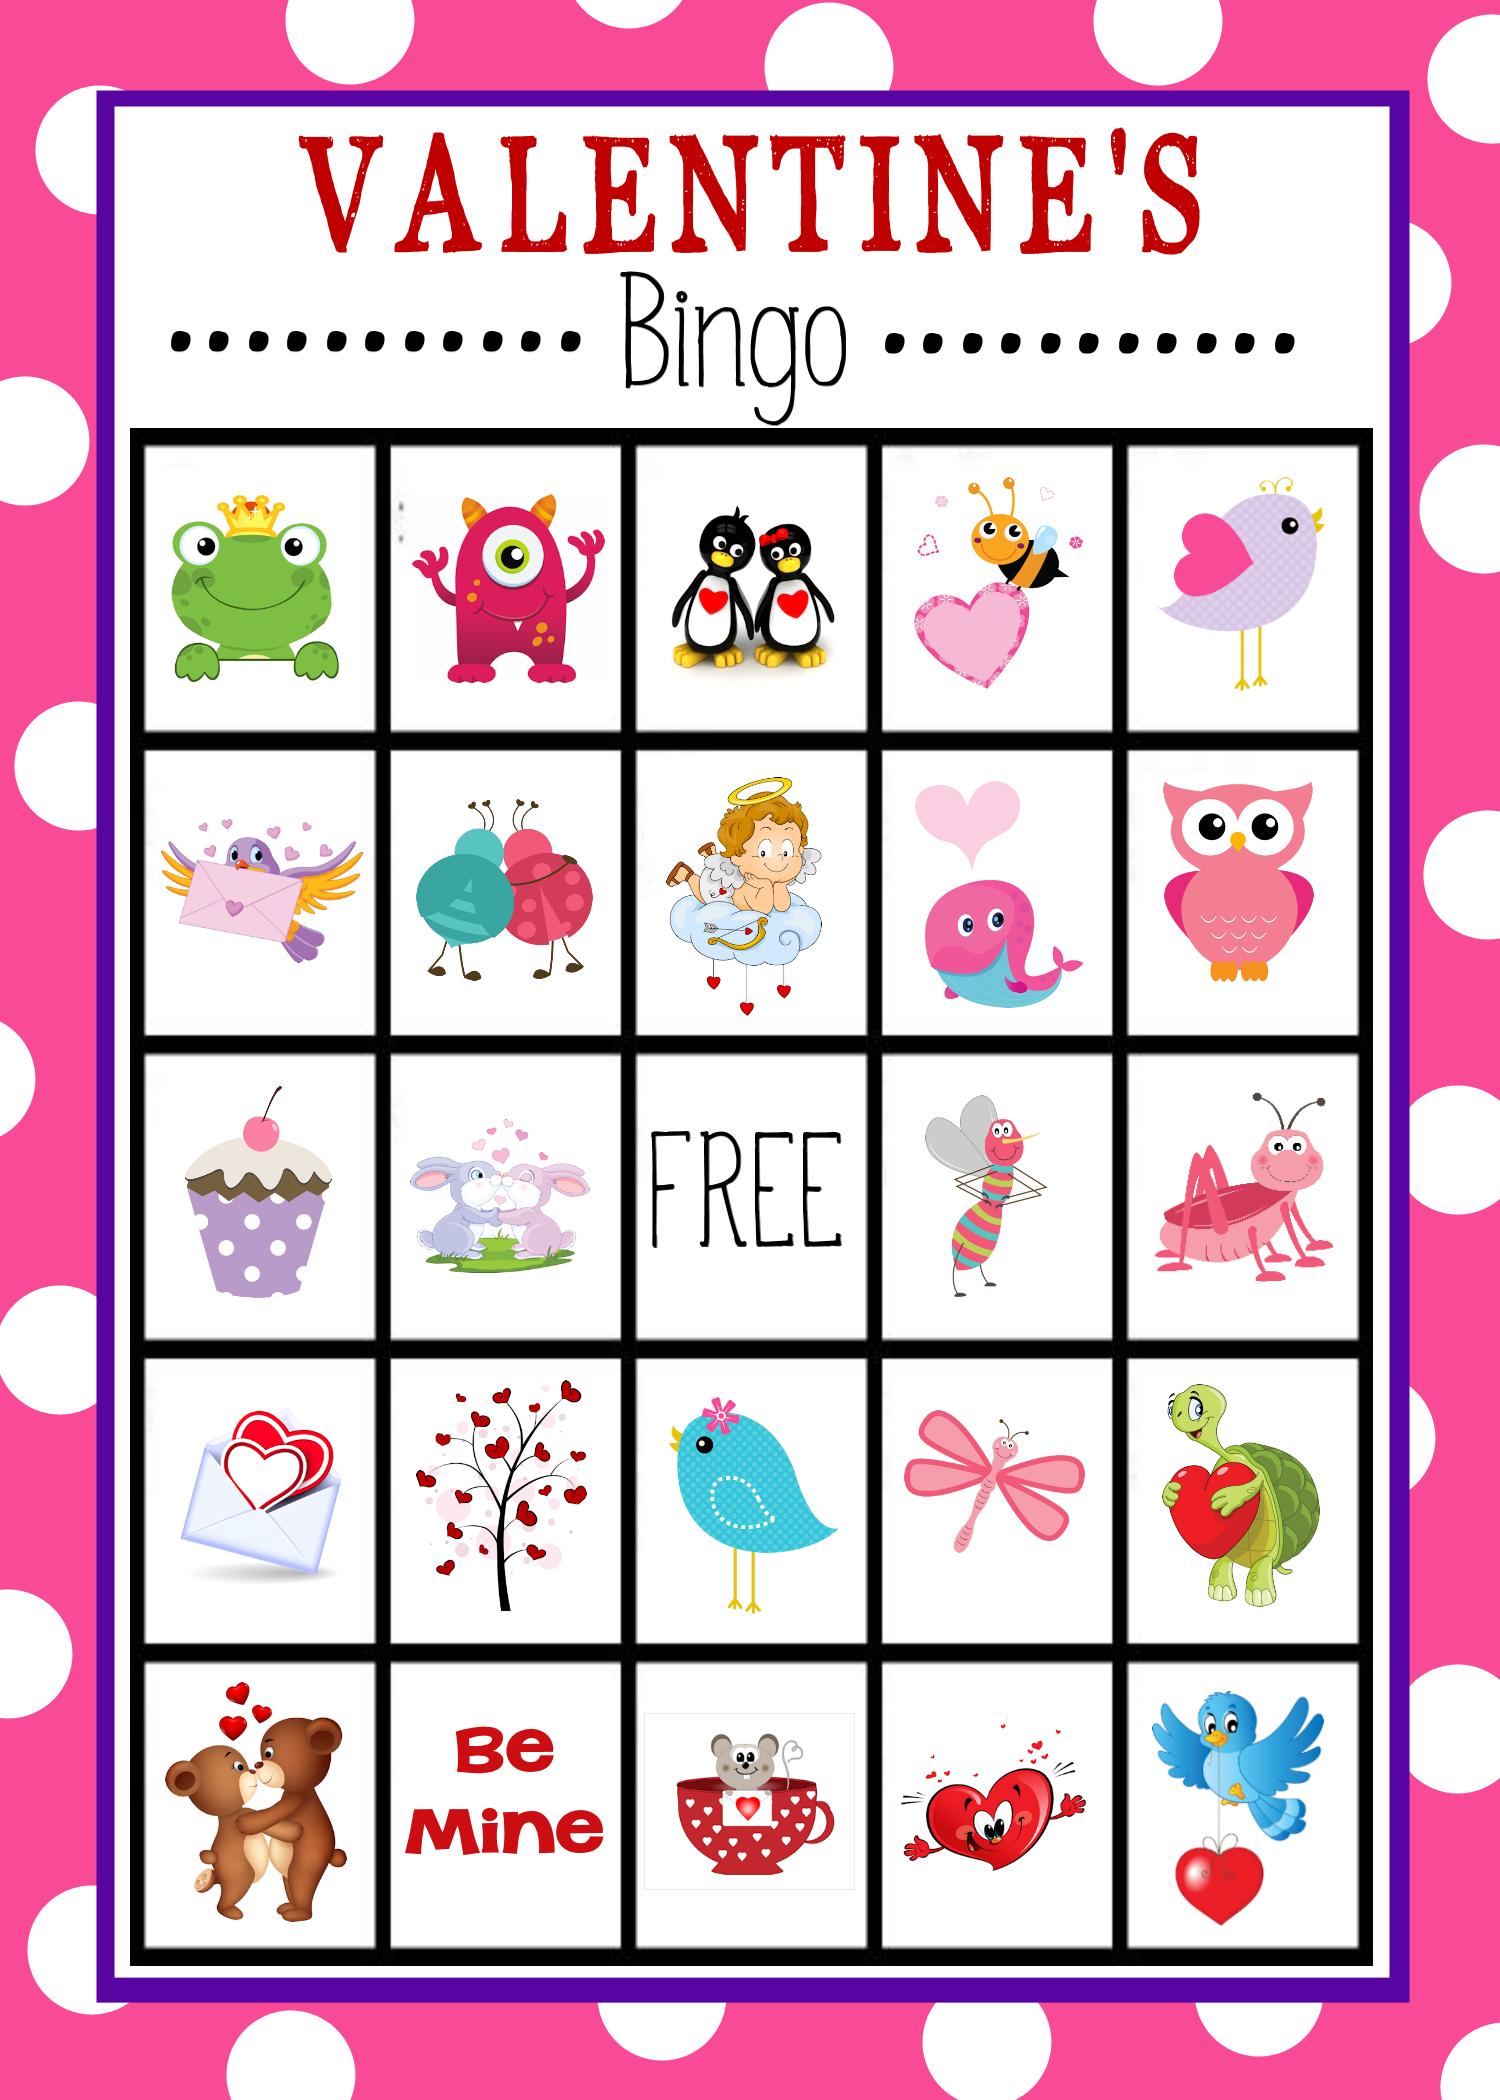 worksheet Bingo Worksheet 10 best images about bingo on pinterest game cards for kids and calling cards